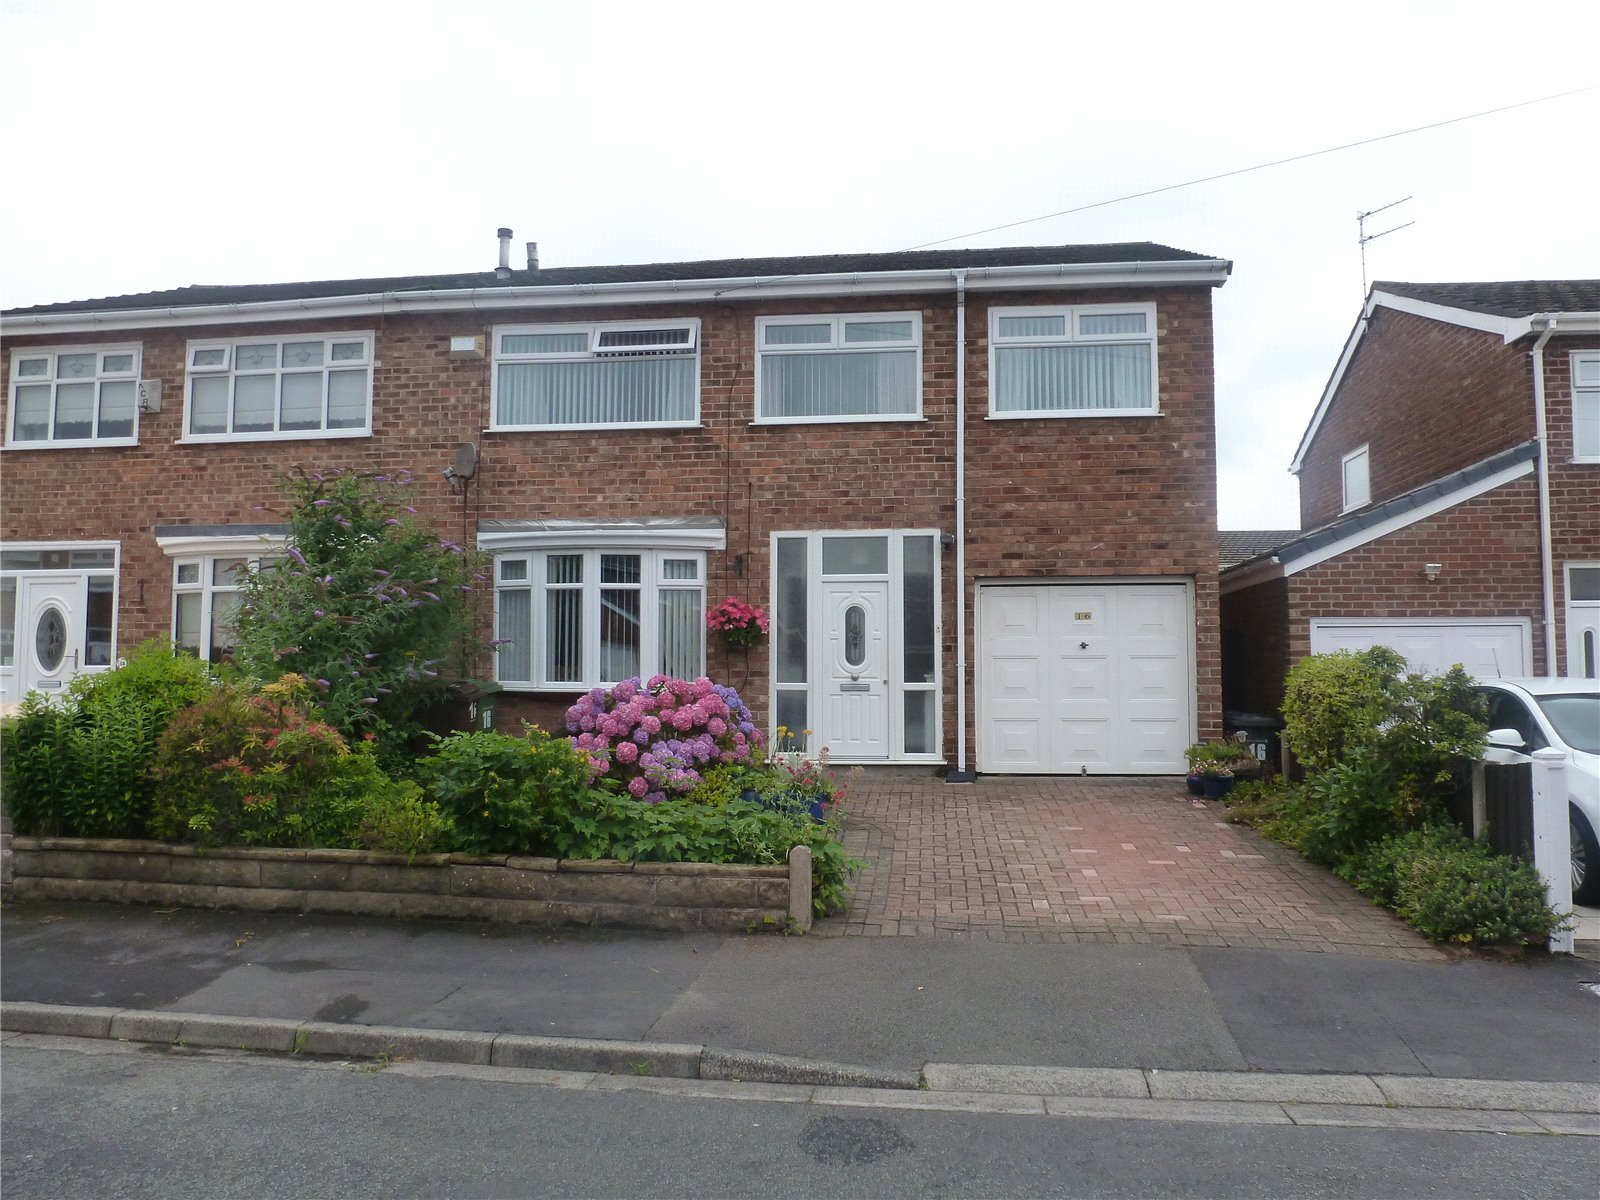 4 Bedrooms Semi Detached House for sale in Monmouth Drive, Liverpool, Merseyside, L10